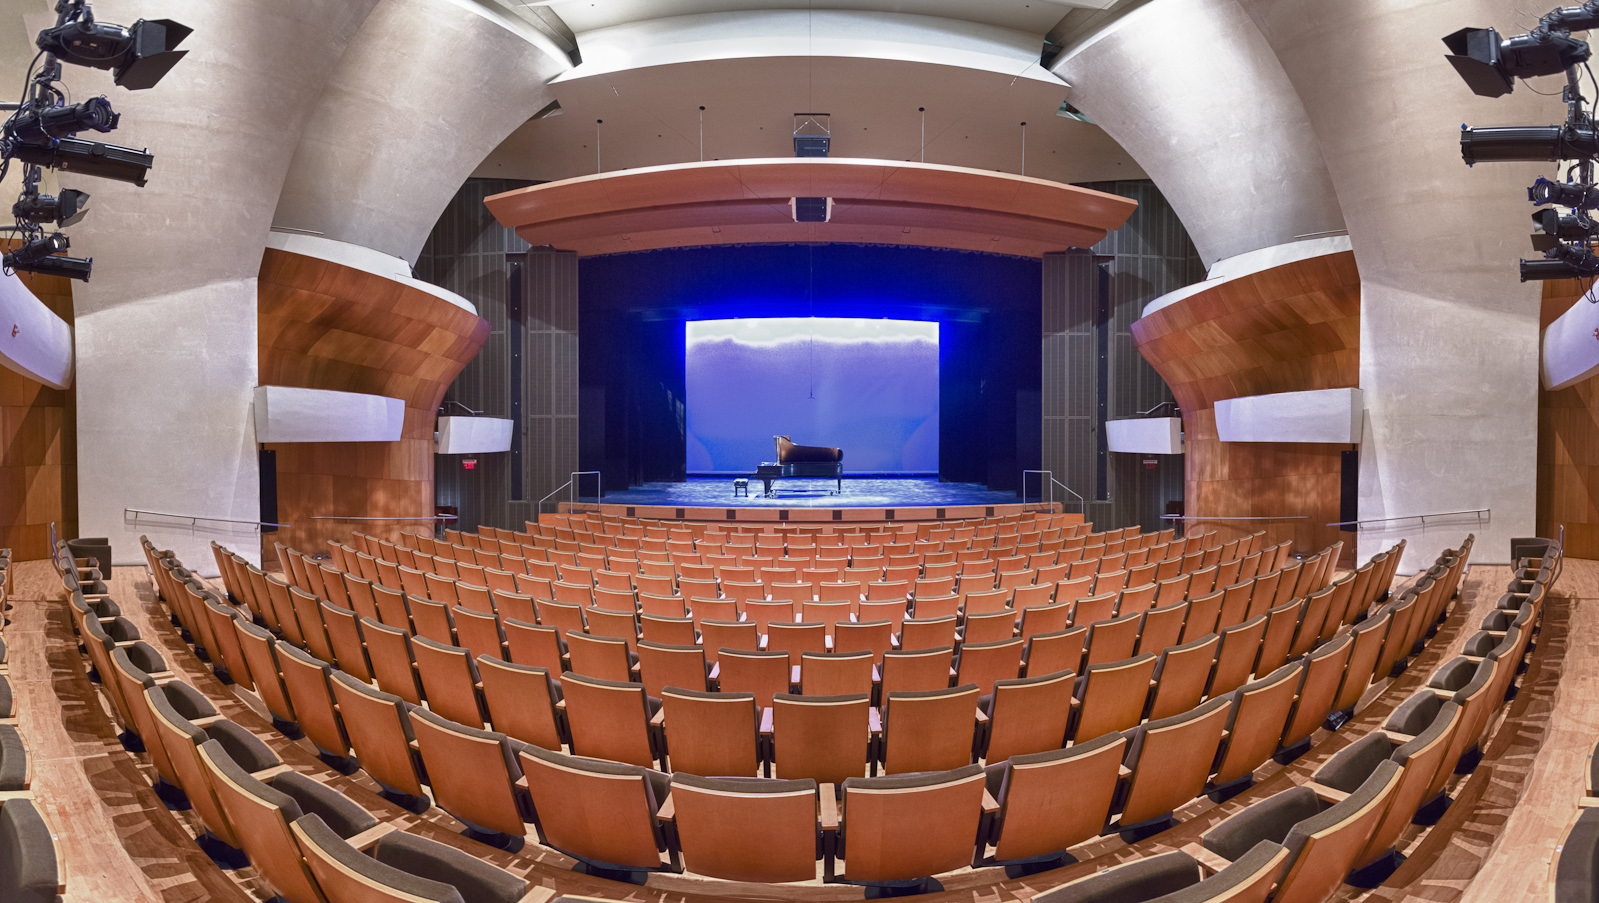 The Broad Stage Auditorium form the rear